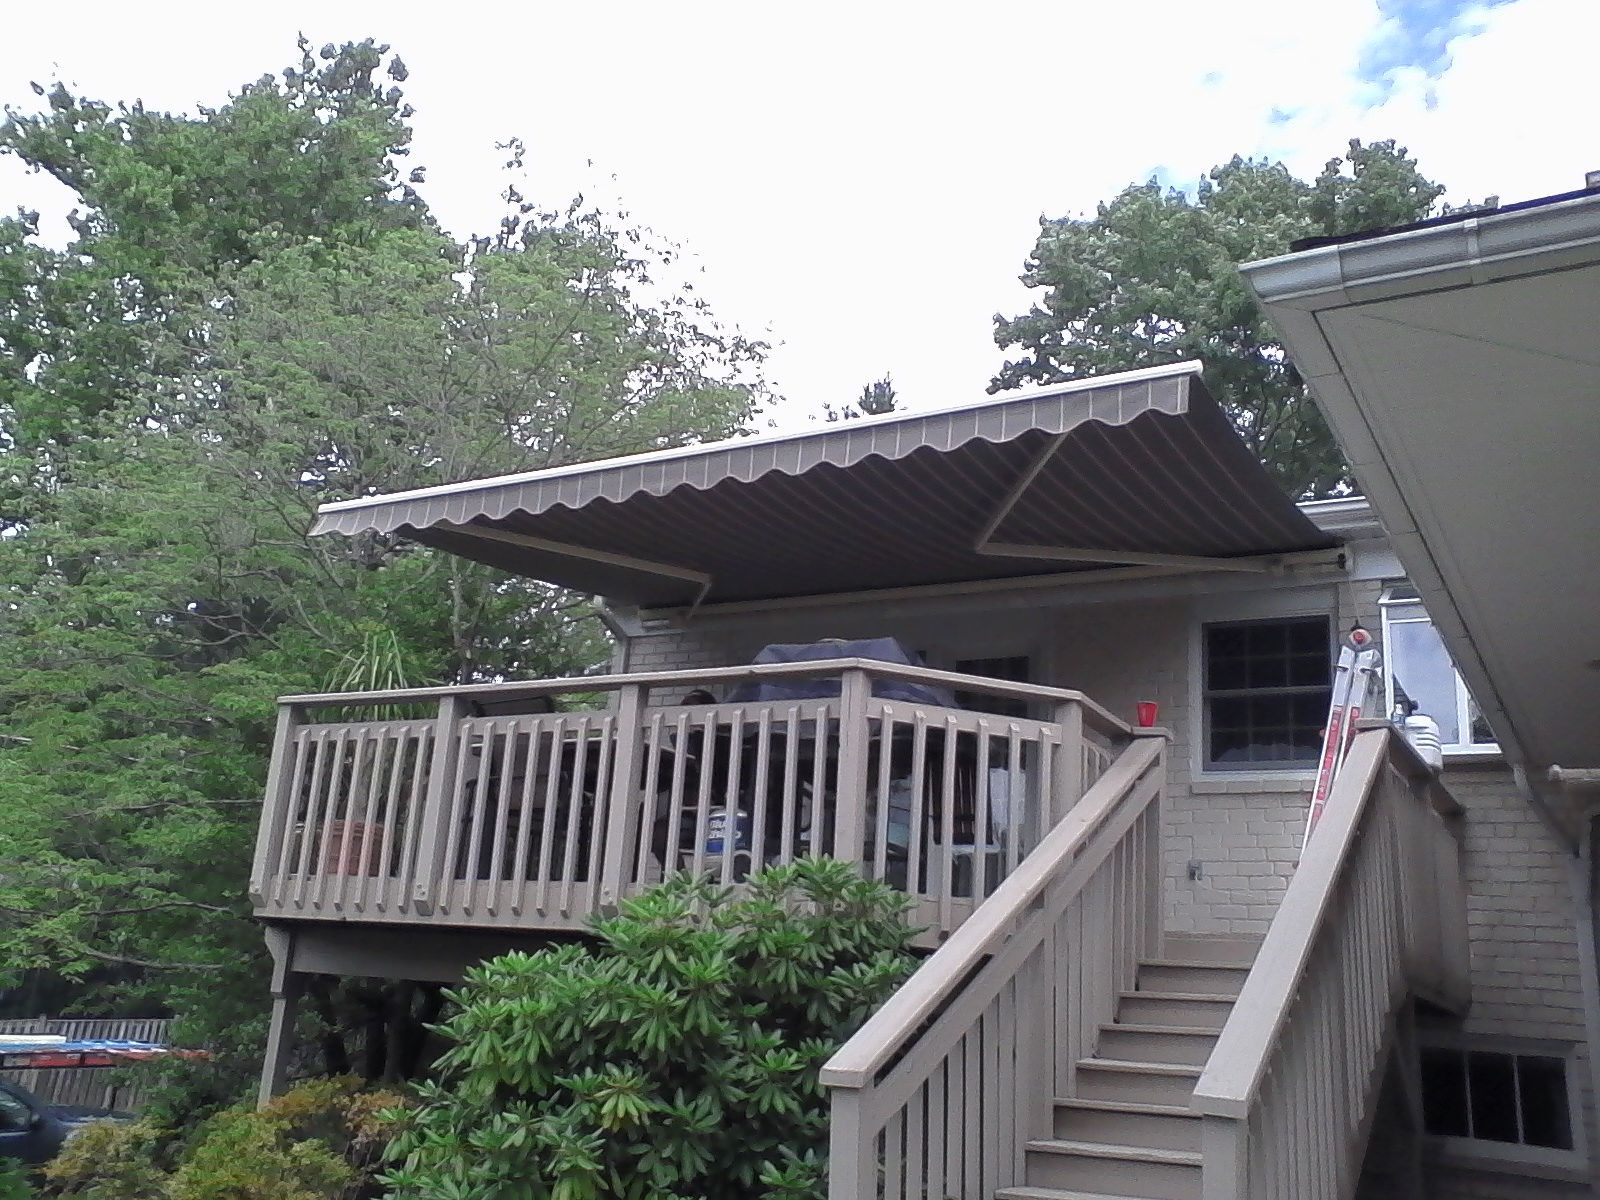 Retractable-Awning-Bethesda (With images)   Retractable ...